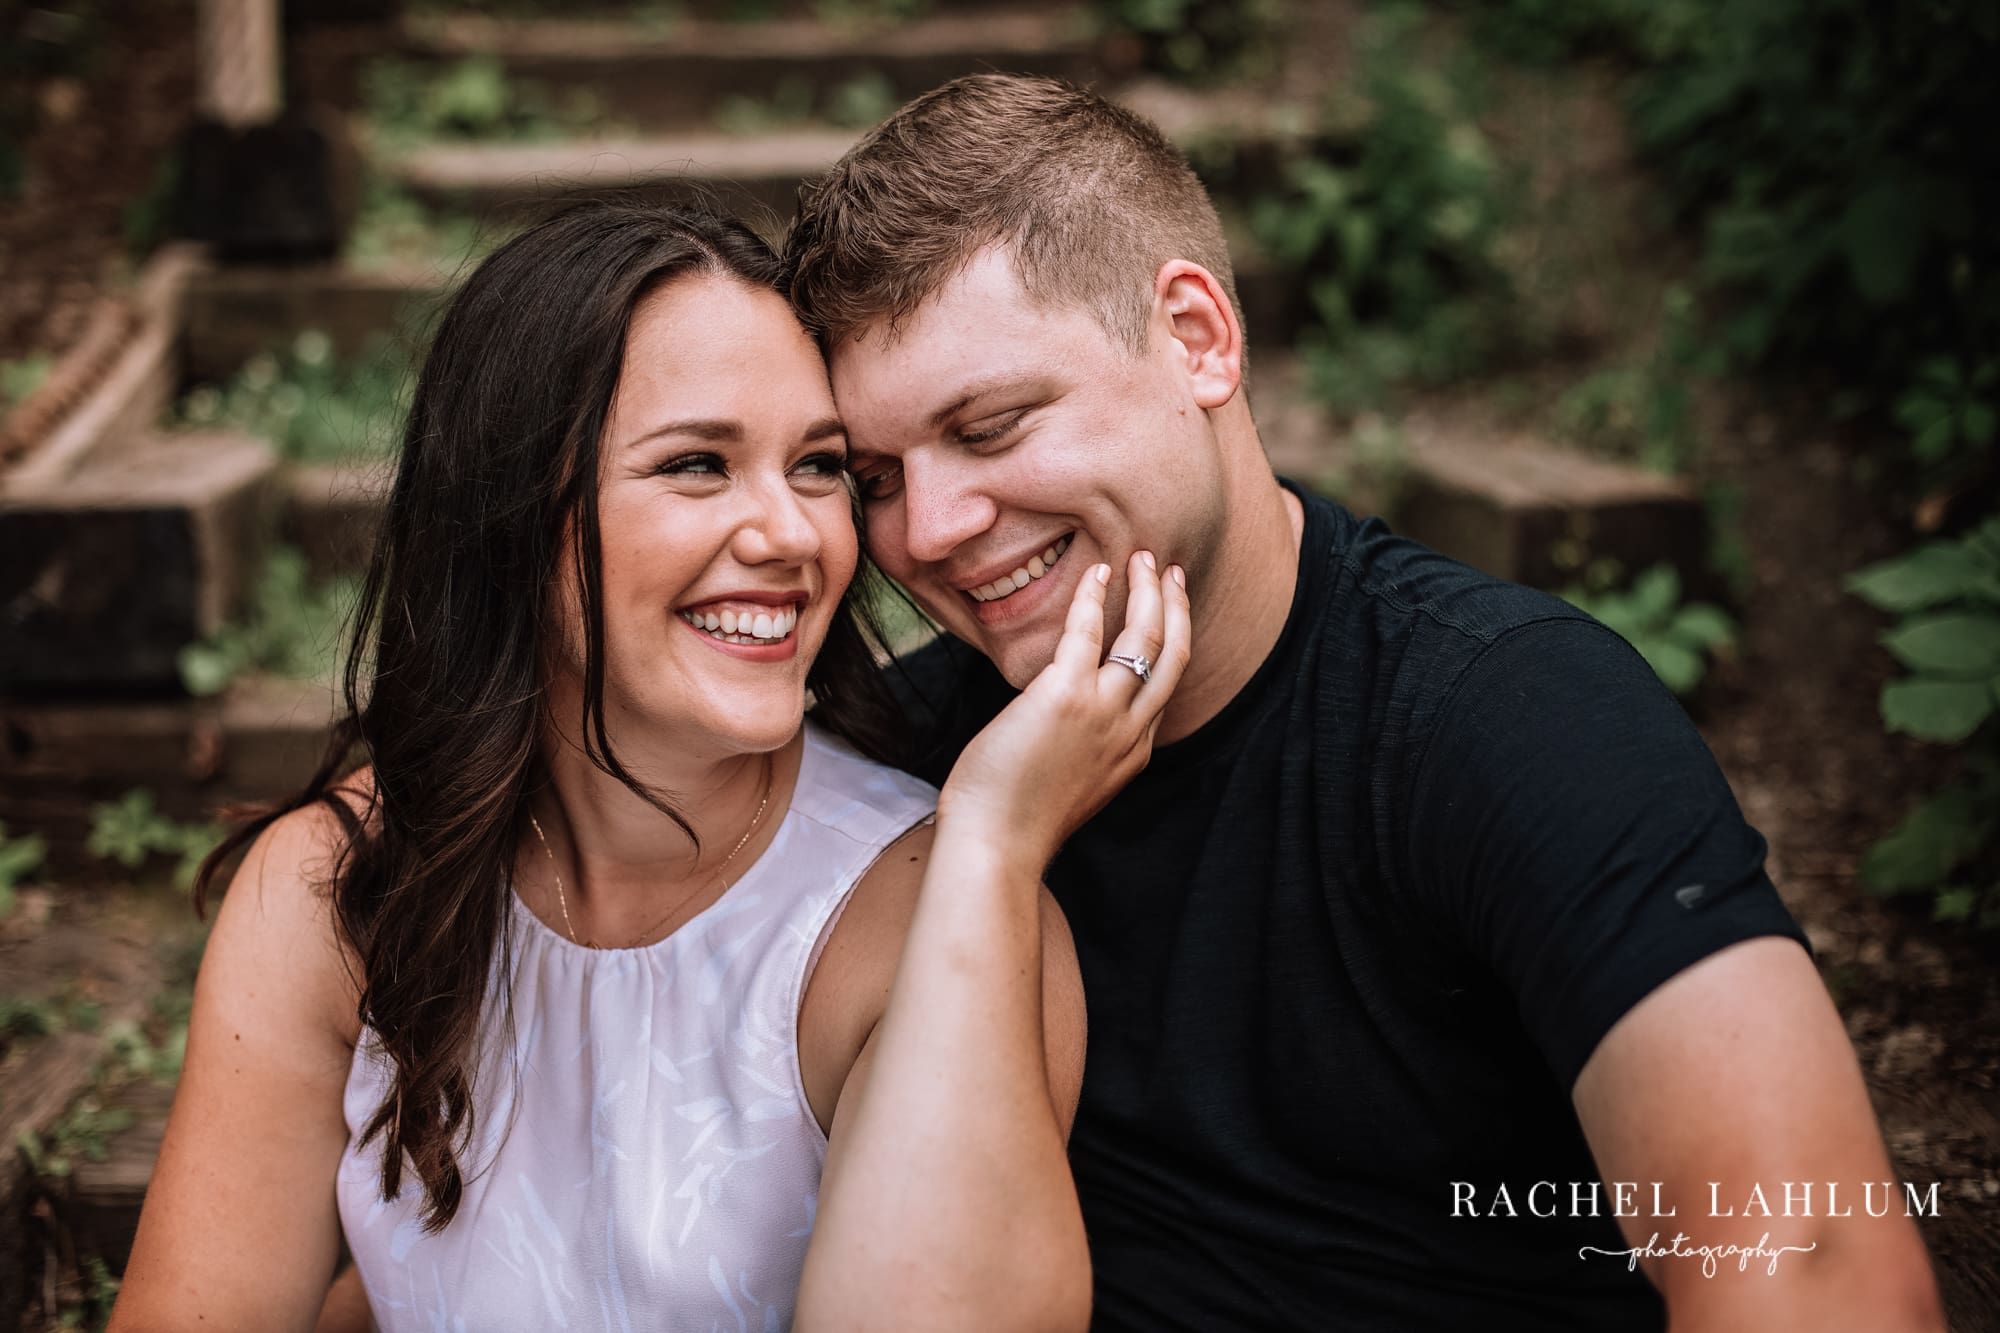 Summer engagement session in Northeast Minneapolis, MN.